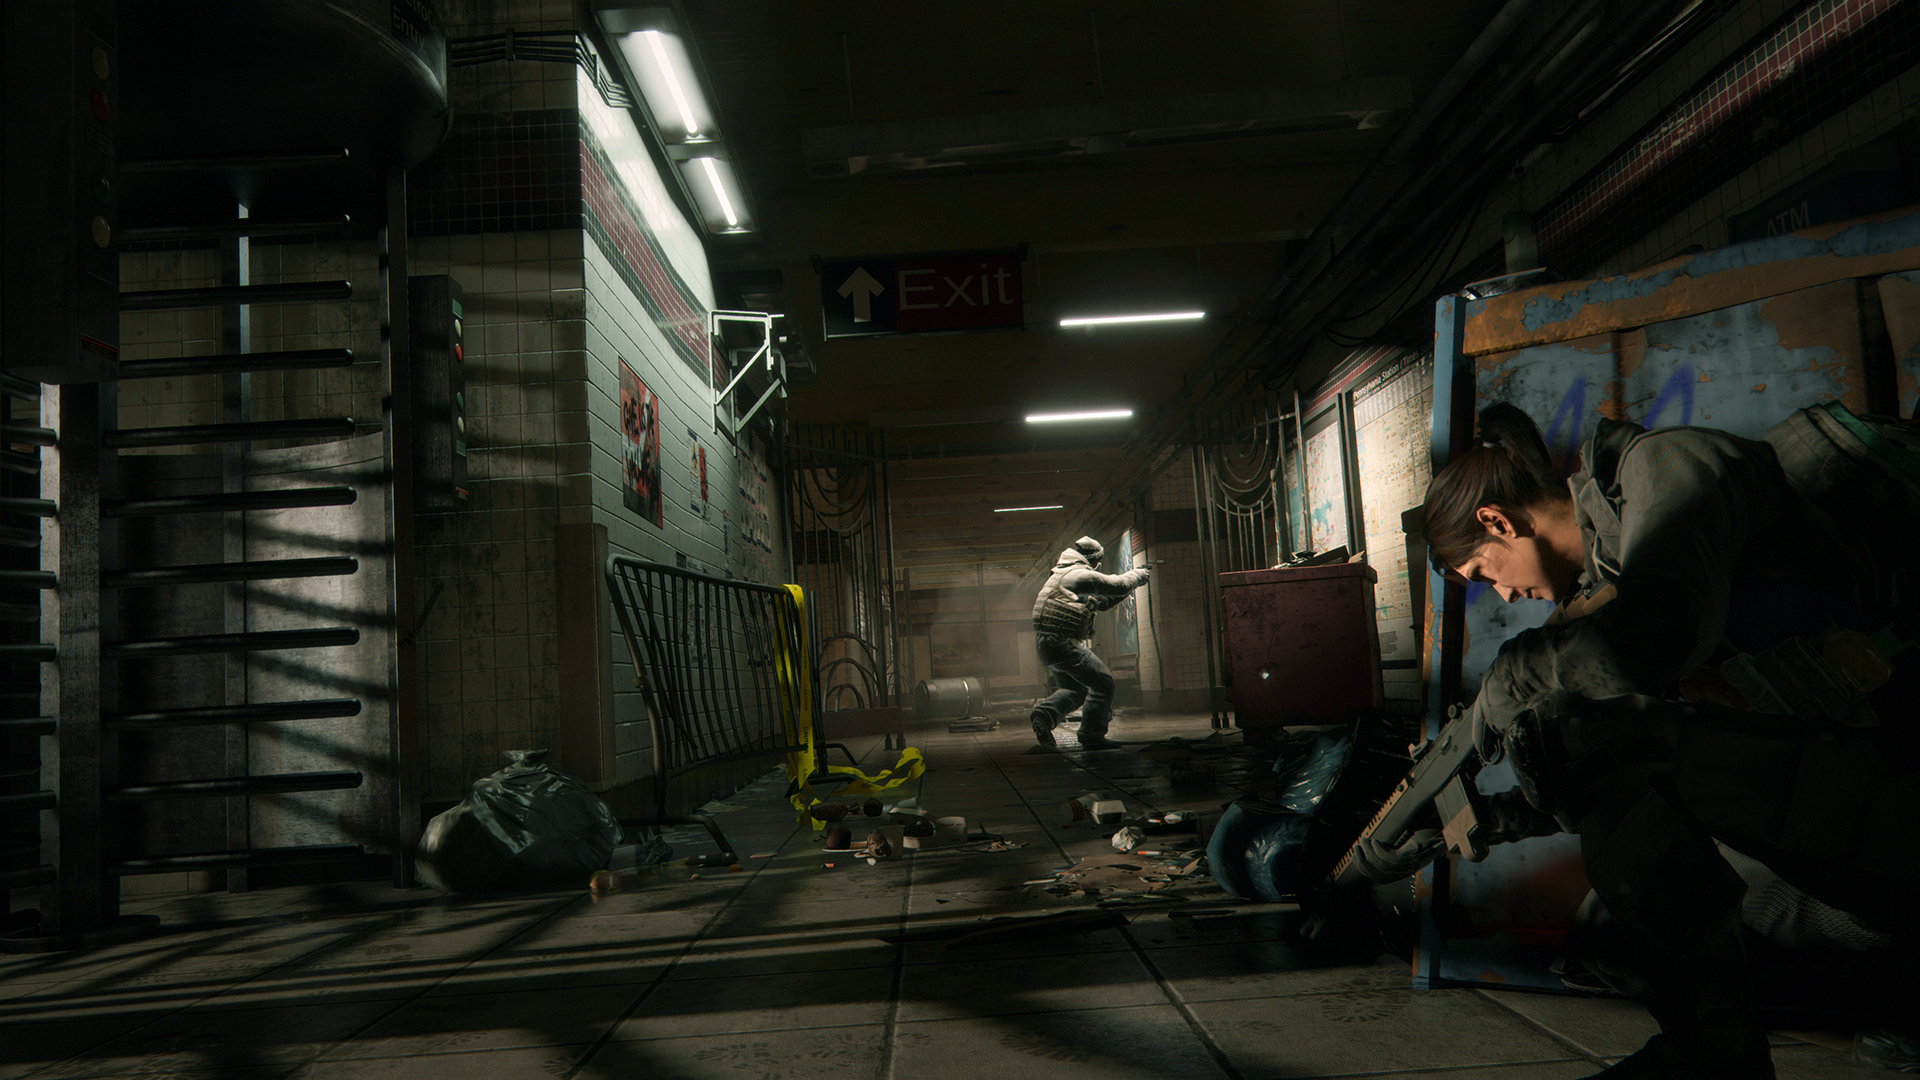 Co-Optimus - Review - Tom Clancy's The Division Co-Op Review